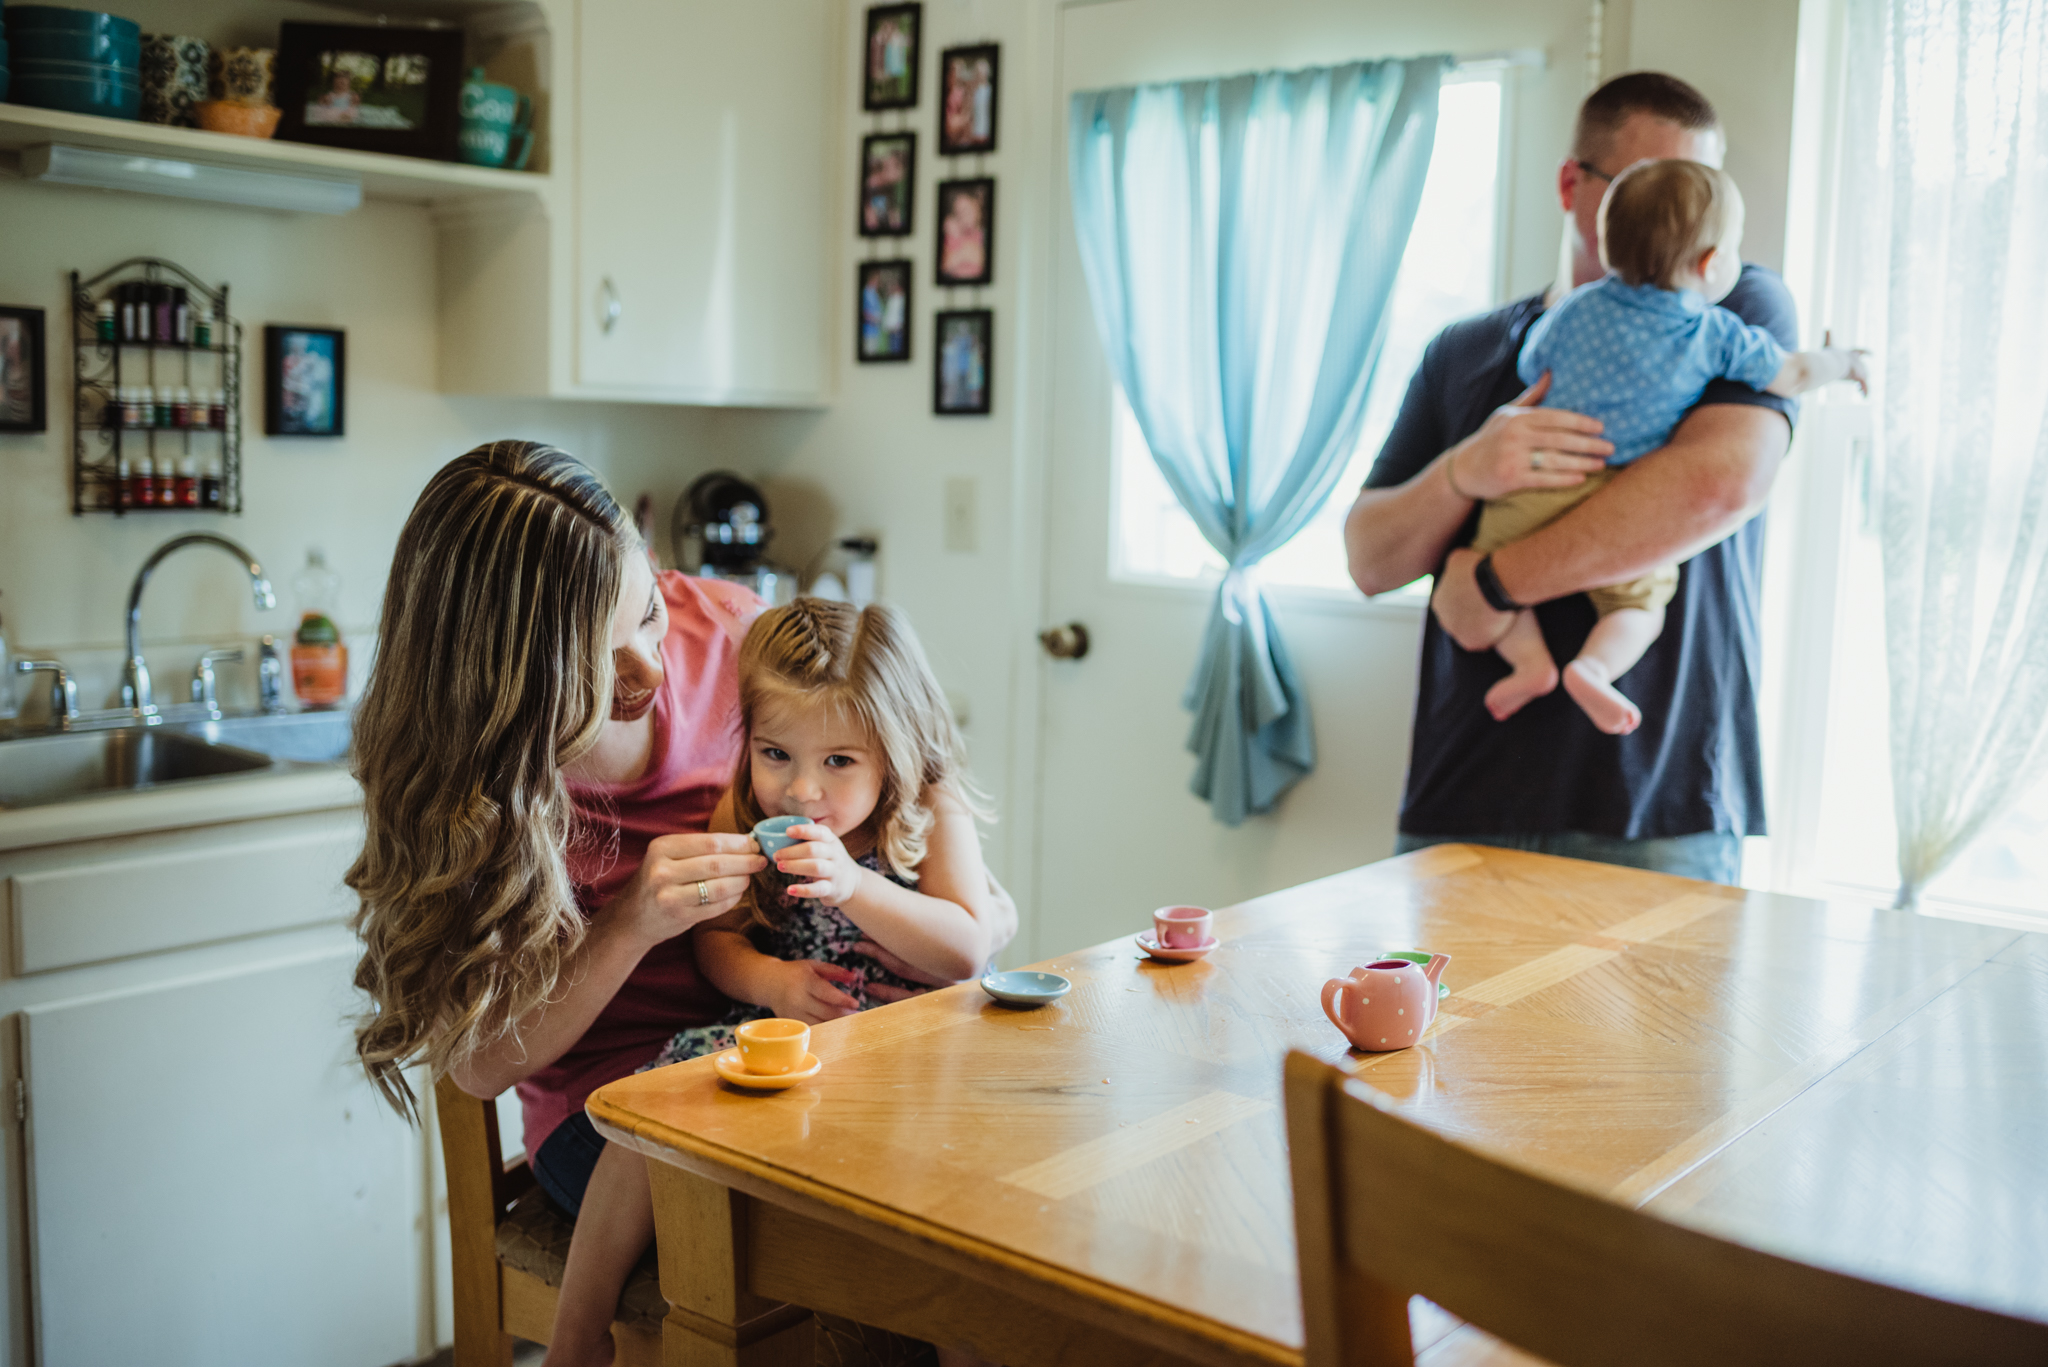 The little girl and Mom have tea time together with the family in the kitchen during their lifestyle session at home in Wake Forest with Rose Trail Images.